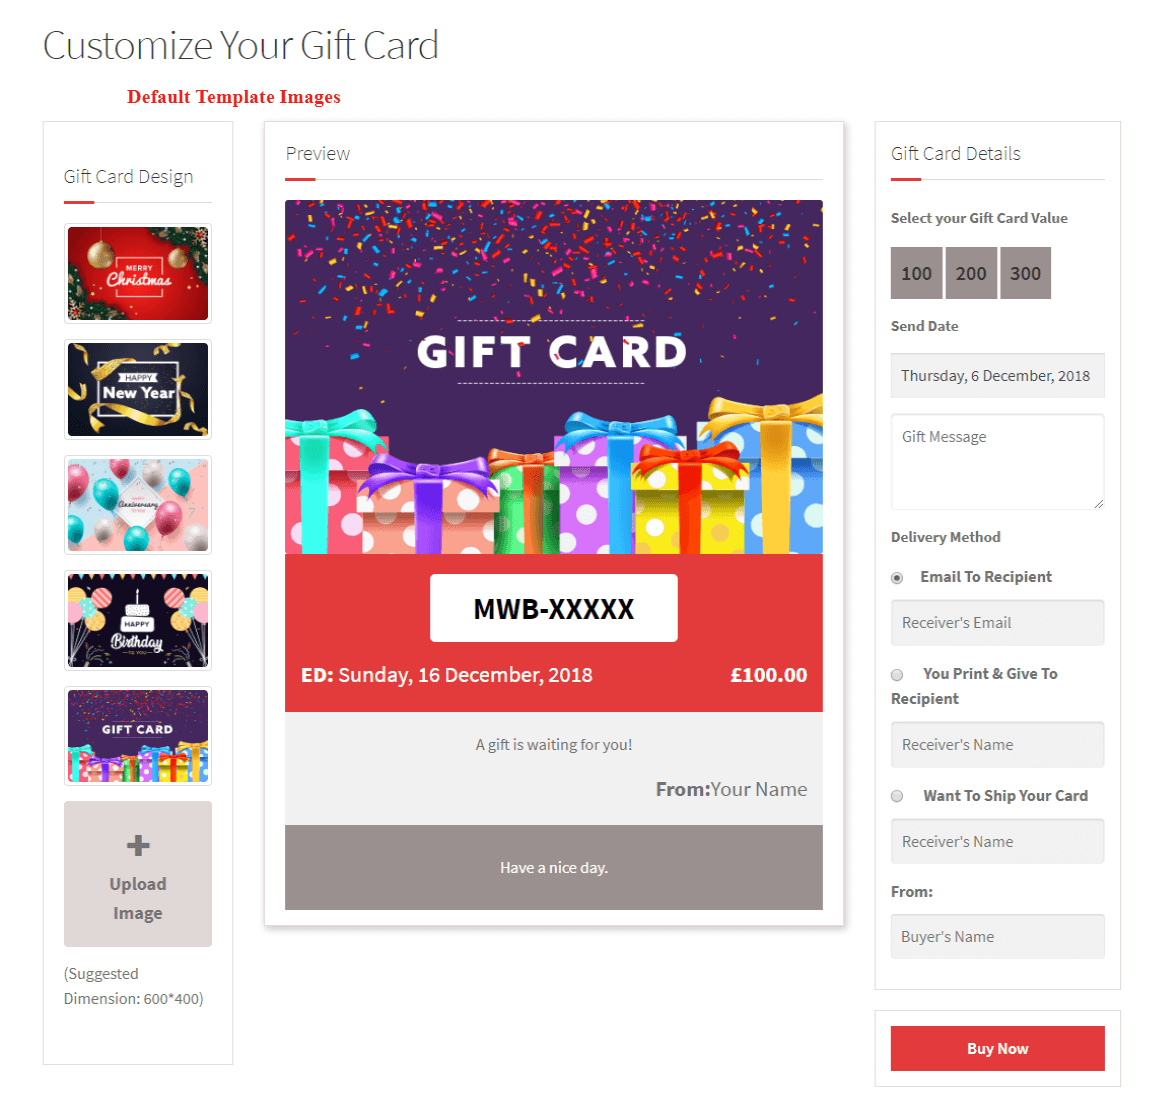 woocommerce-customizable-gift-card-default-template-images-frontend